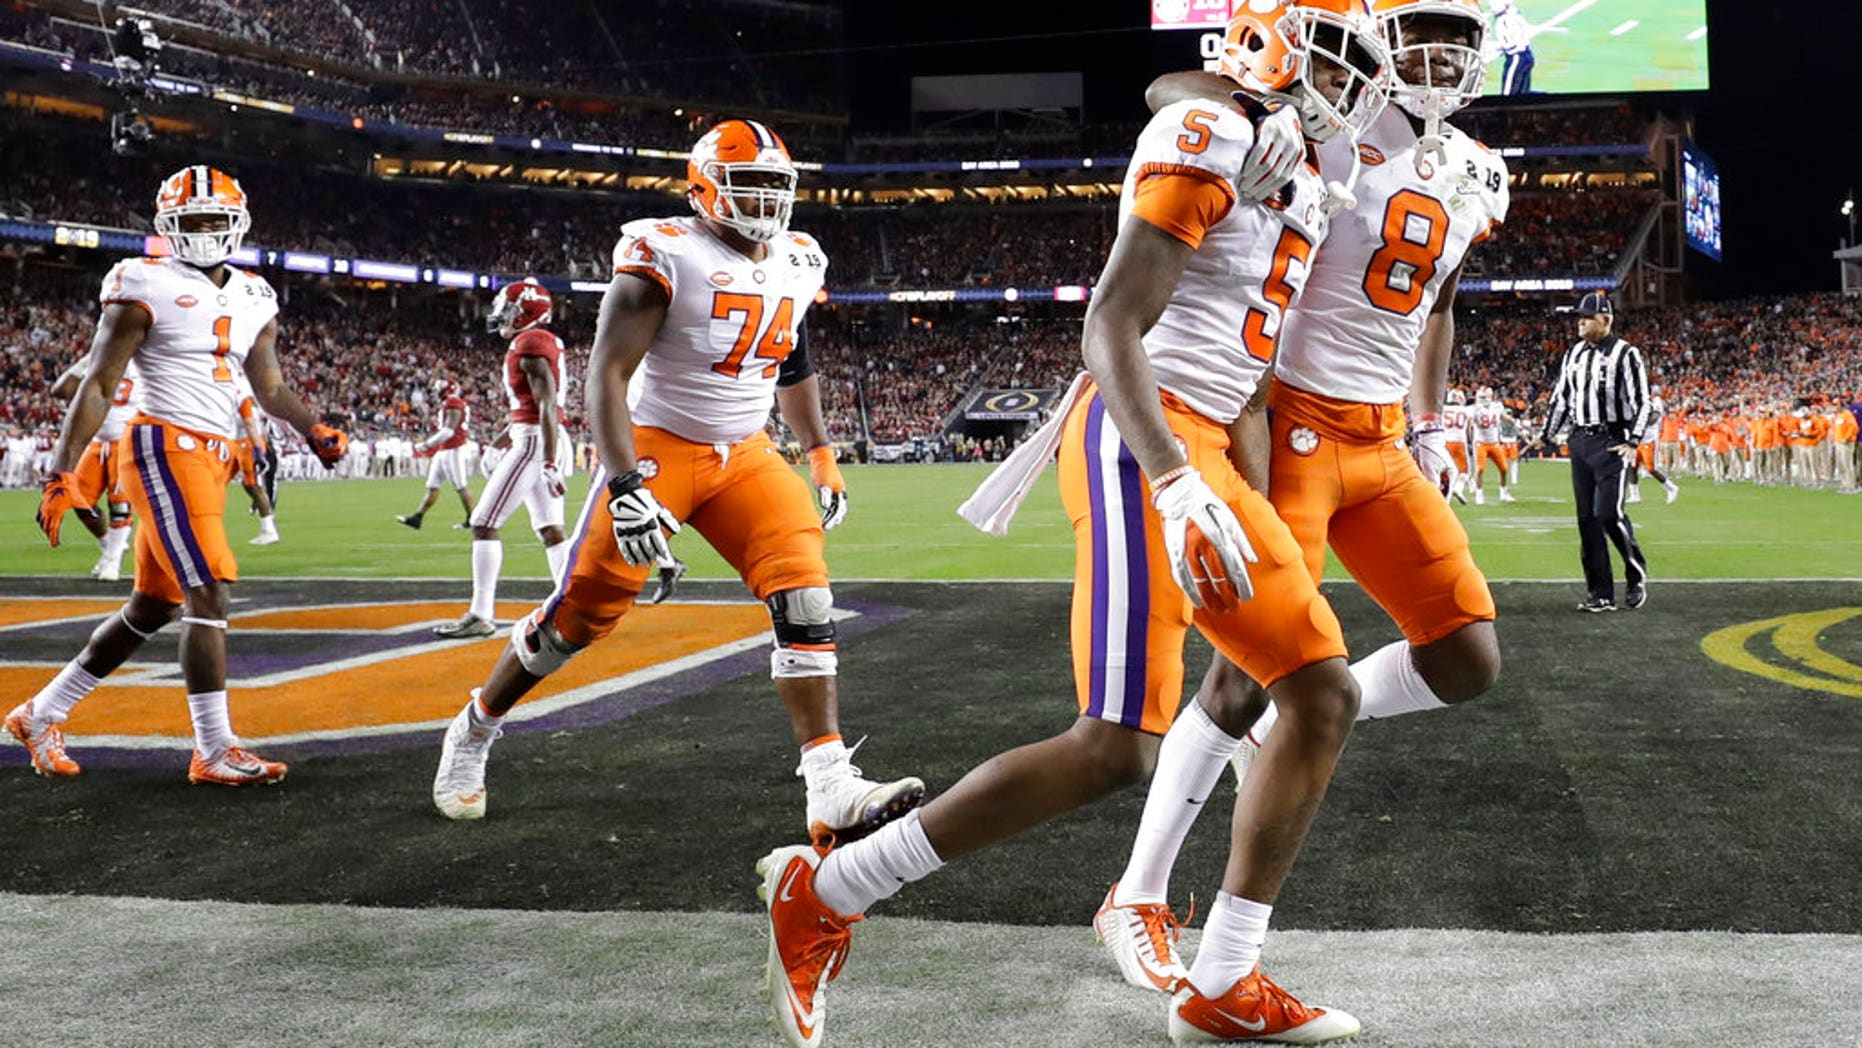 Clemson's Tee Higgins (5) celebrates his touchdown catch during the second half of the NCAA college football playoff championship game against Alabama, Monday, Jan. 7, 2019, in Santa Clara, Calif. (AP Photo/David J. Phillip)